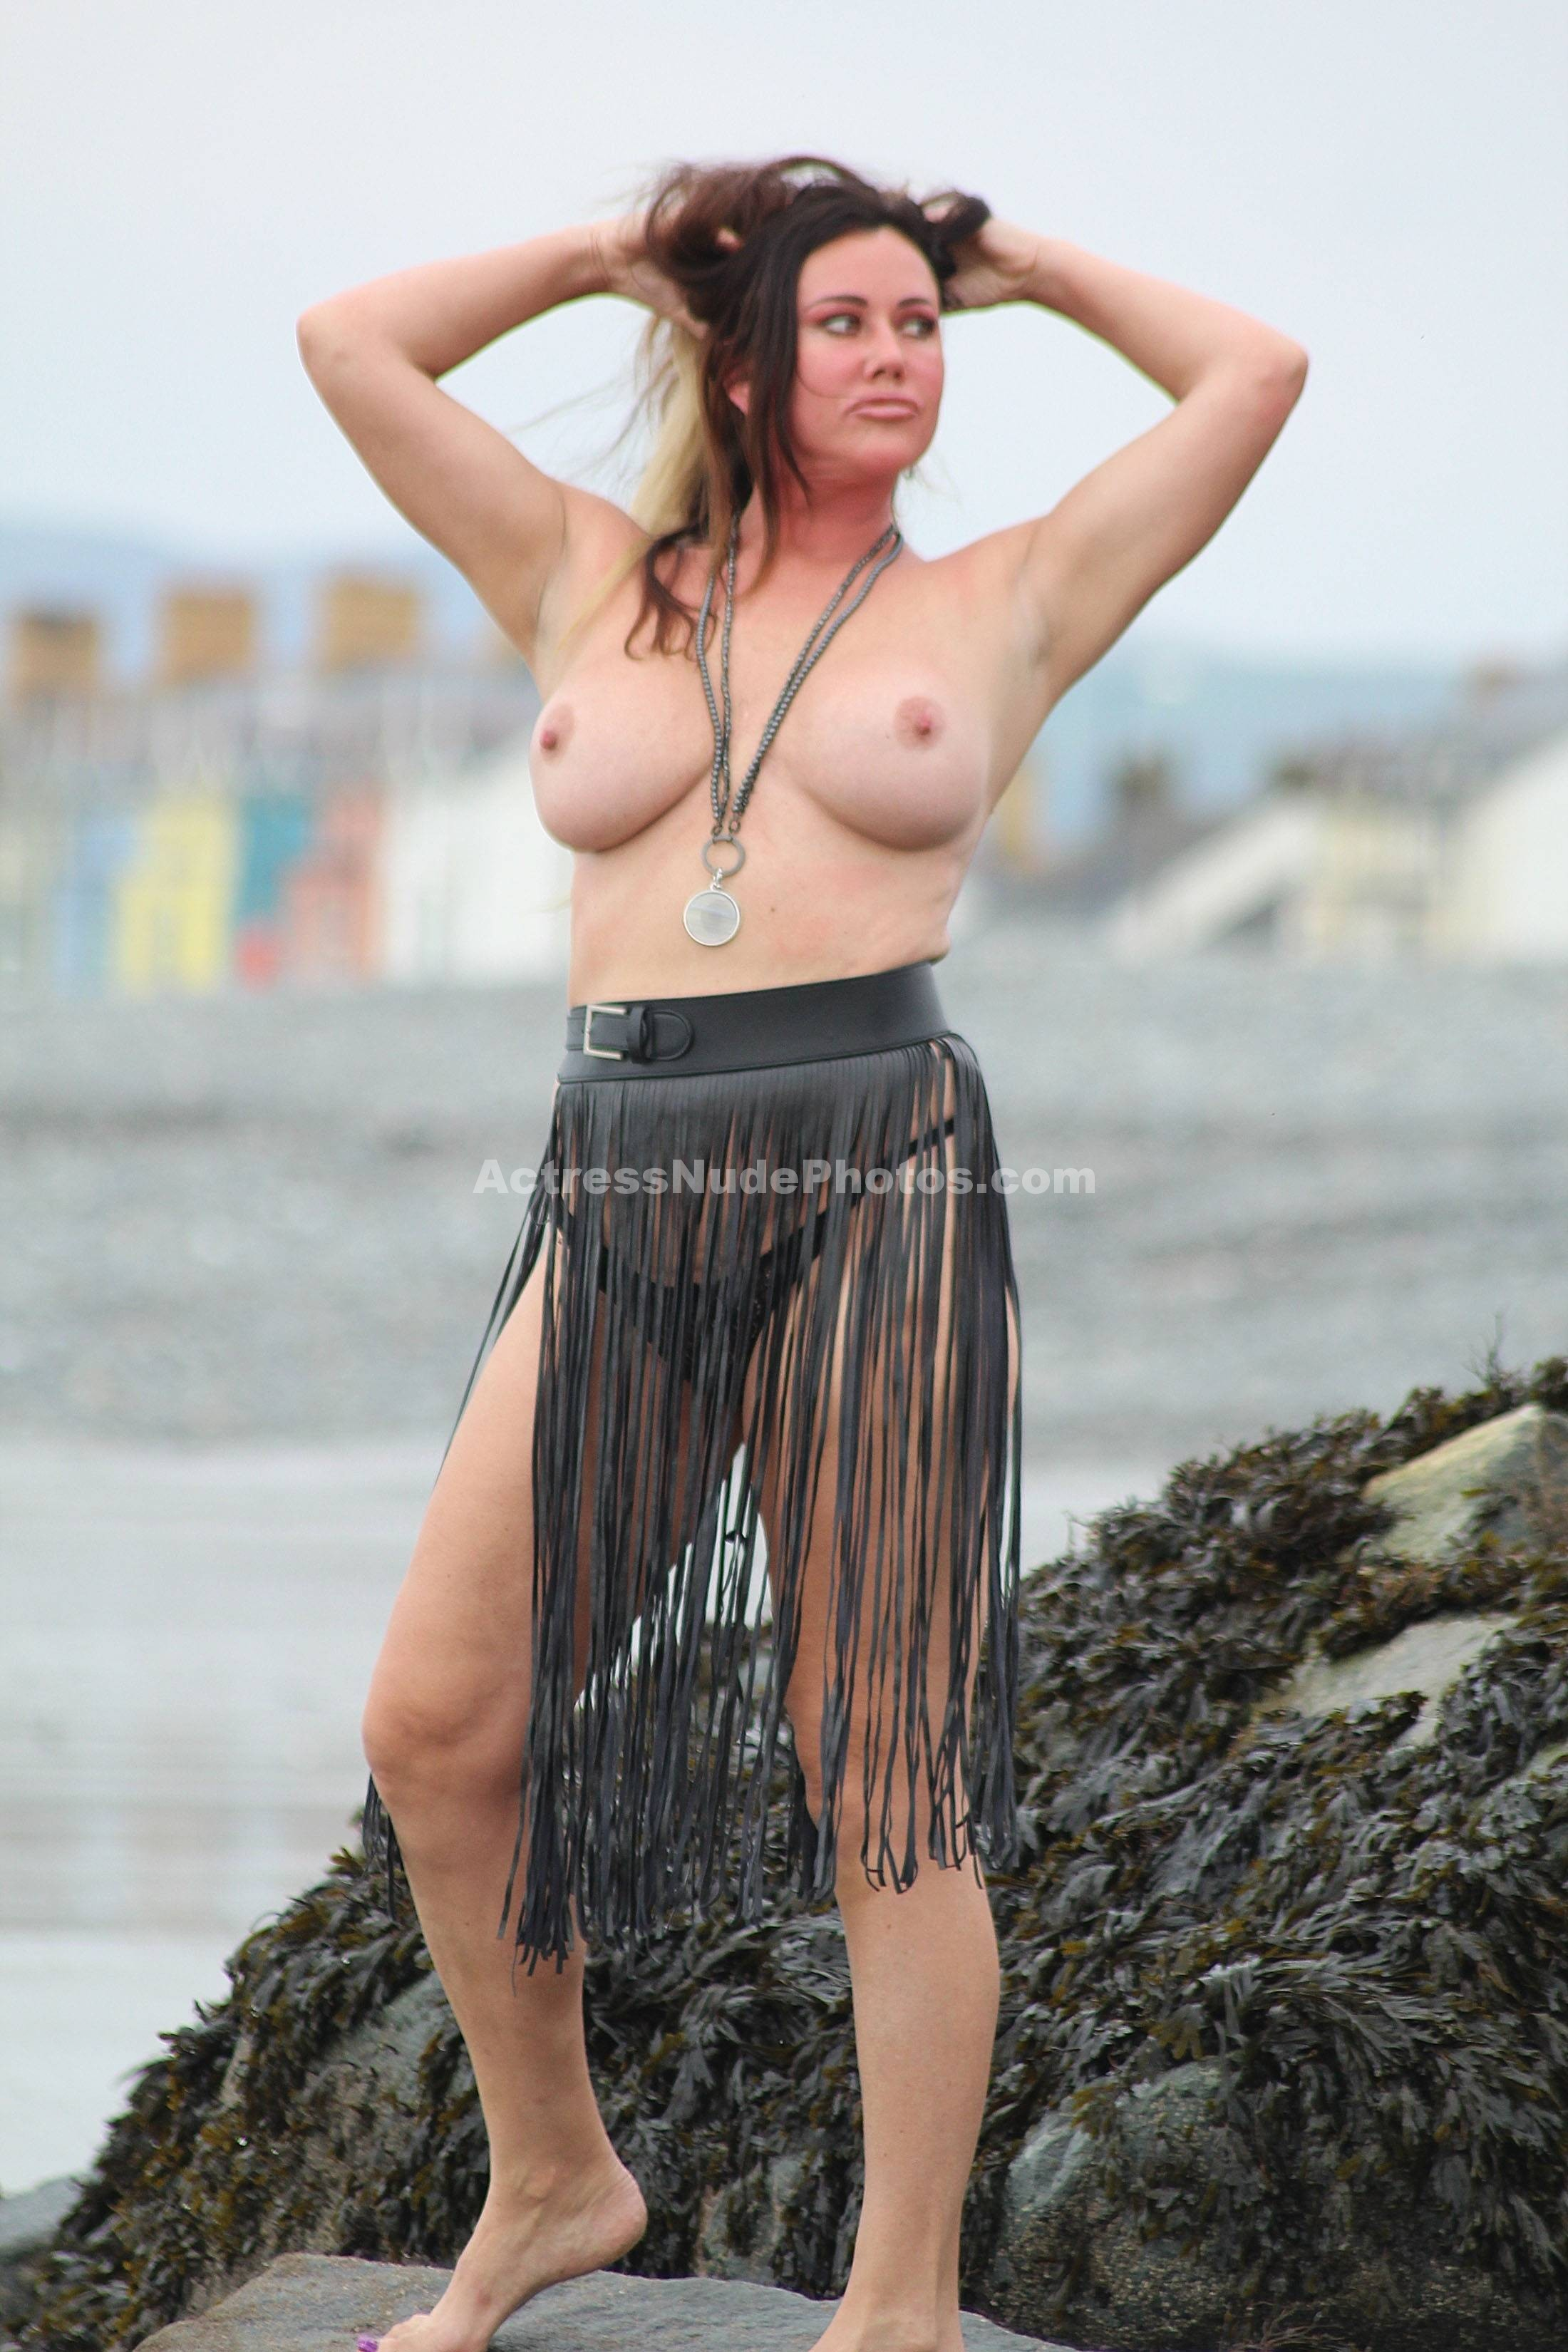 Lisa Appleton posing topless